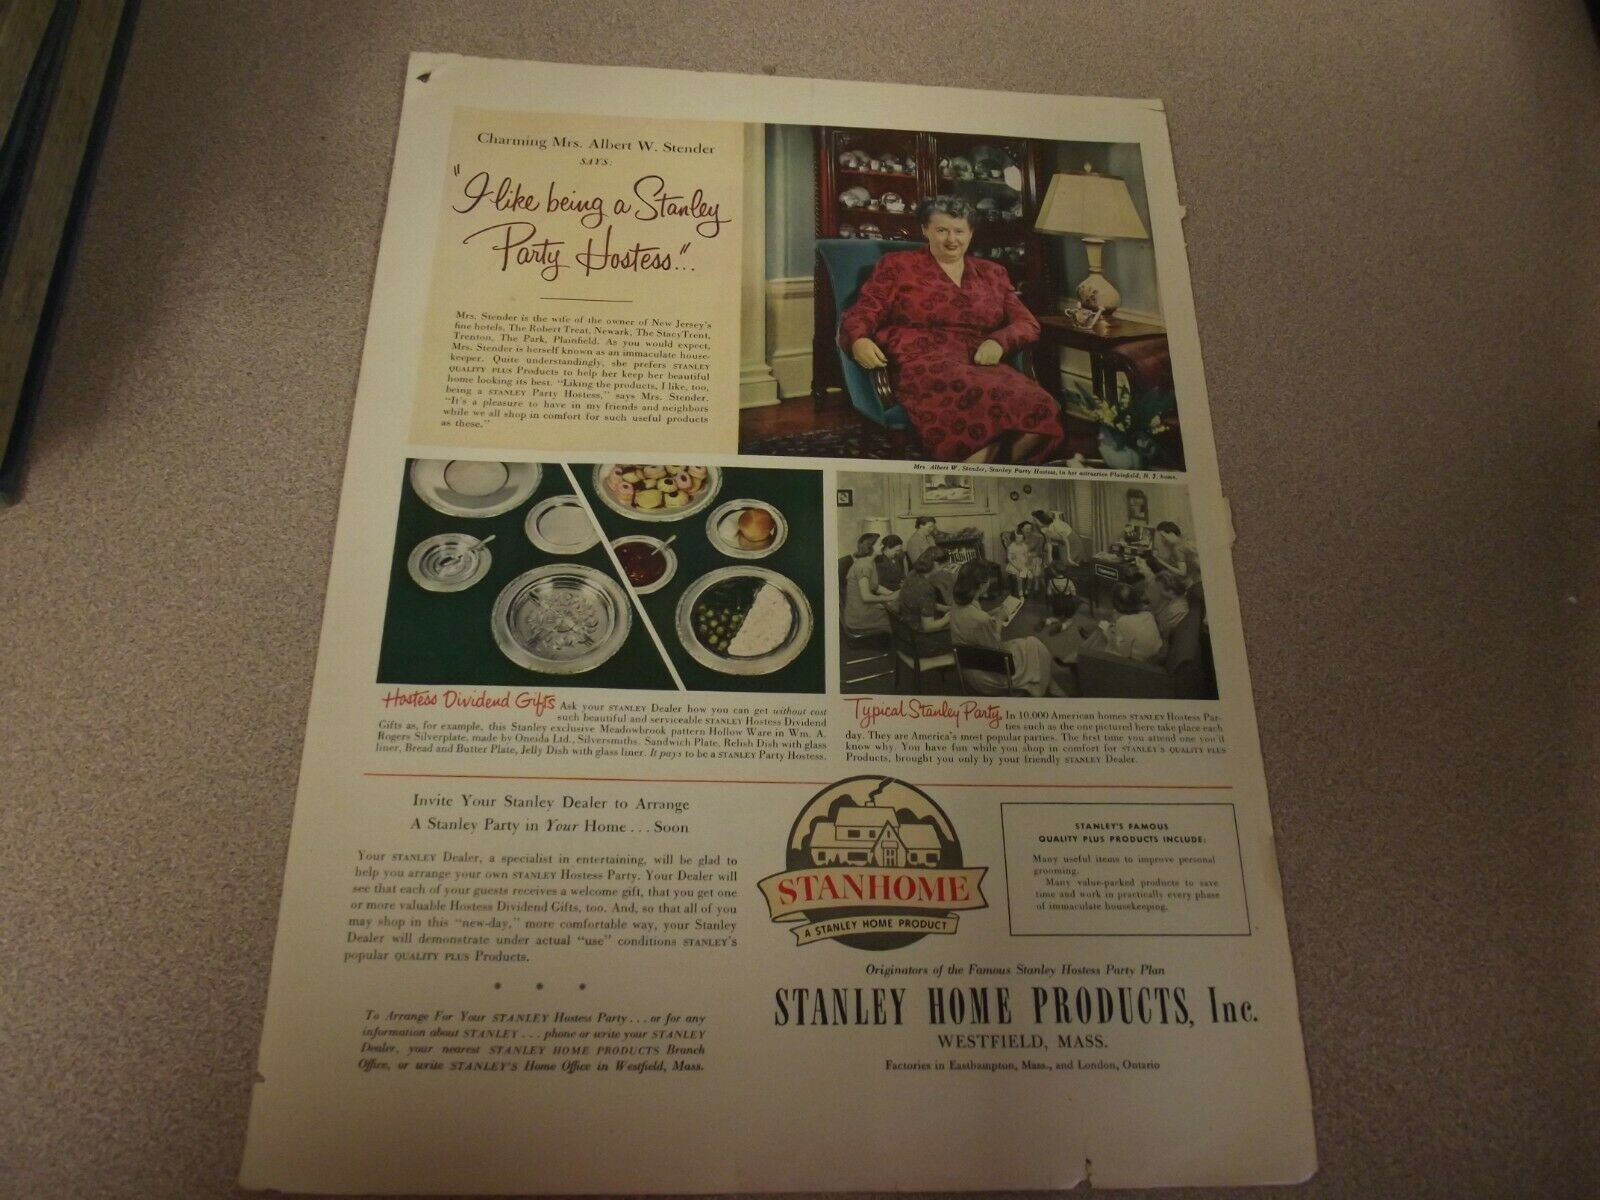 print AD Give a STANLEY HOSTESS PARTY  Stanley Home Products